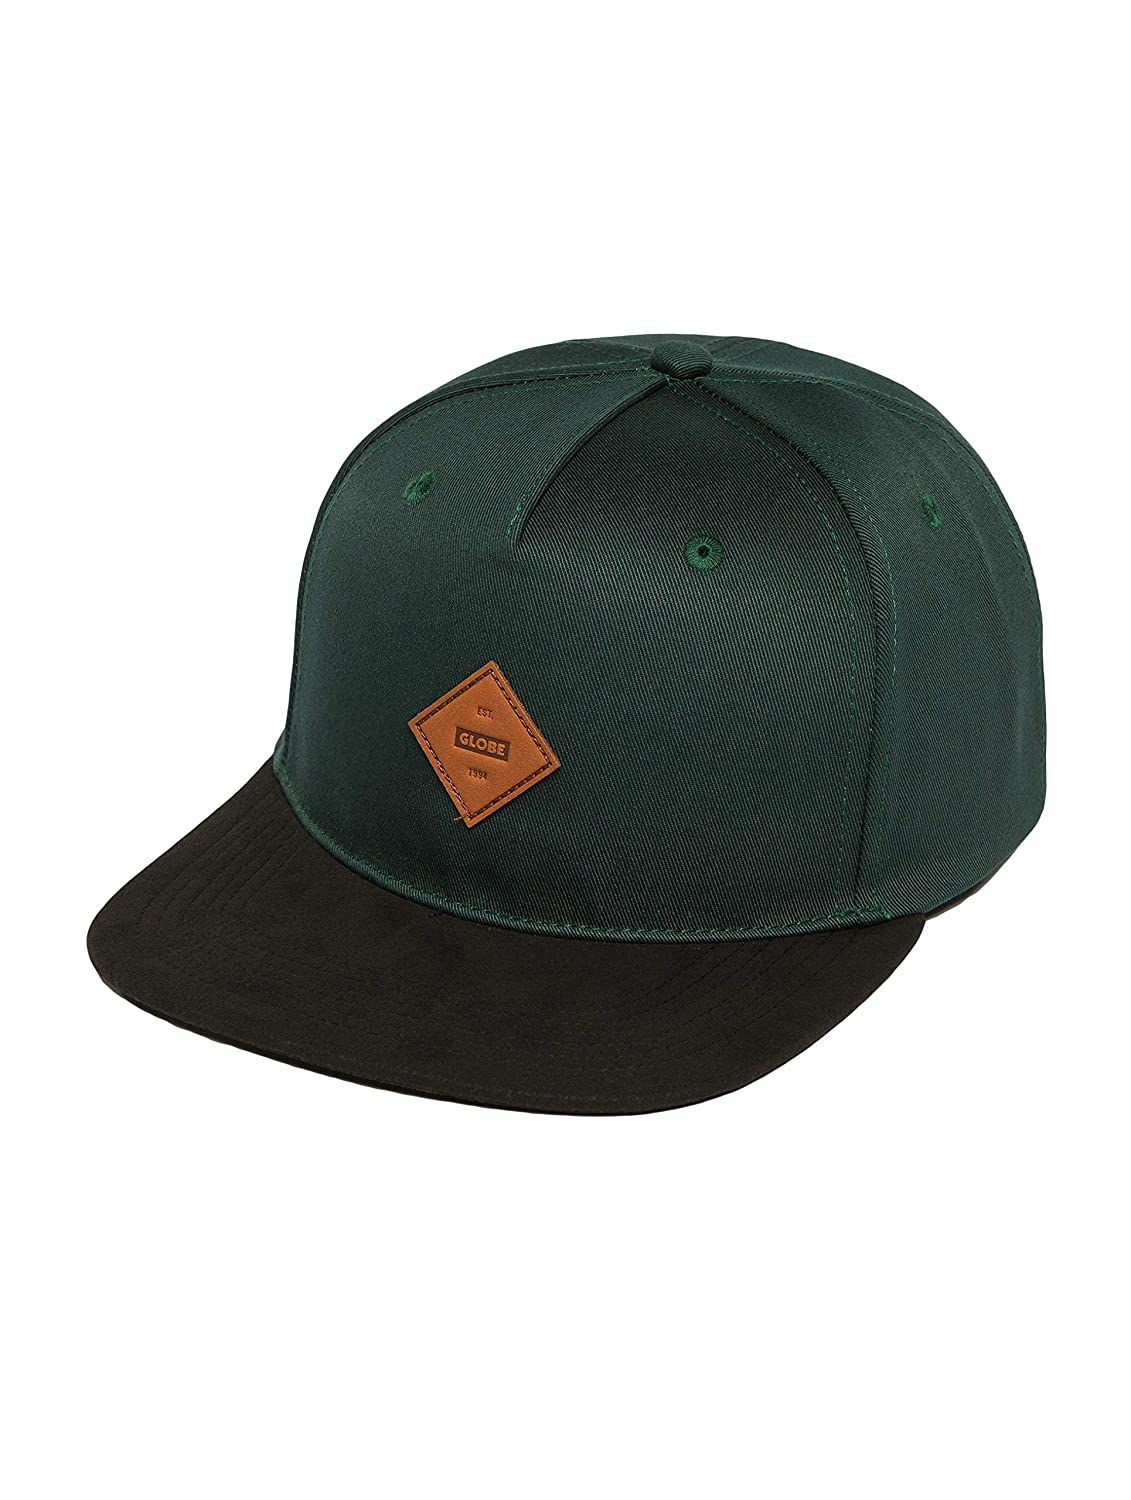 Globe Gladstone II Snap Back - Gorra, Unisex Adulto, Verde(Bottle ...